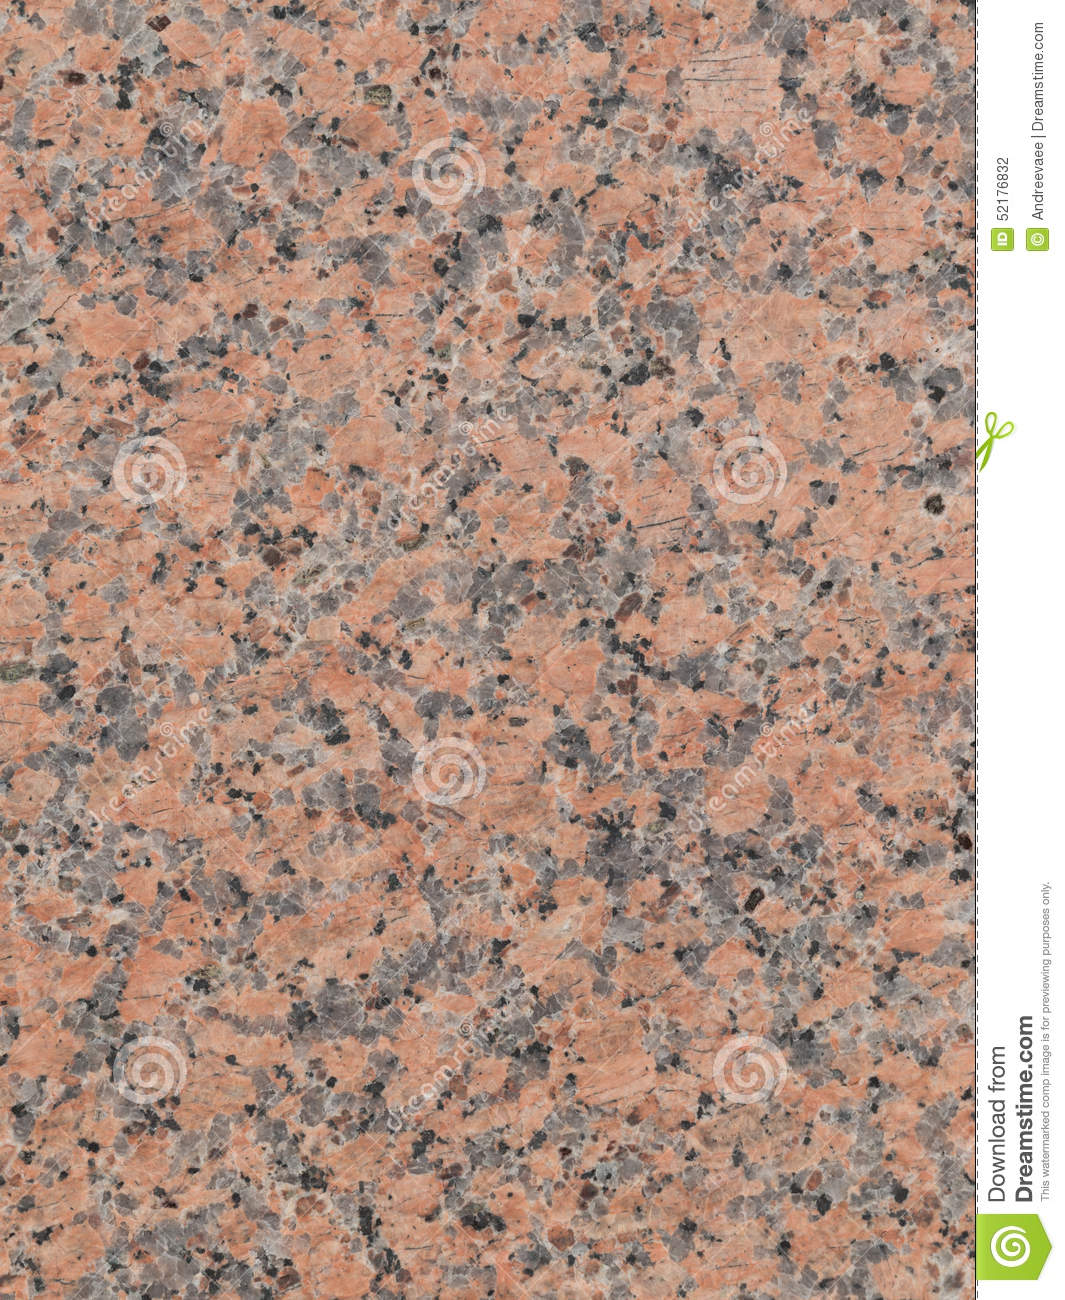 Pink To Gray Granite : Beautiful dark mottled granite stock photo image of